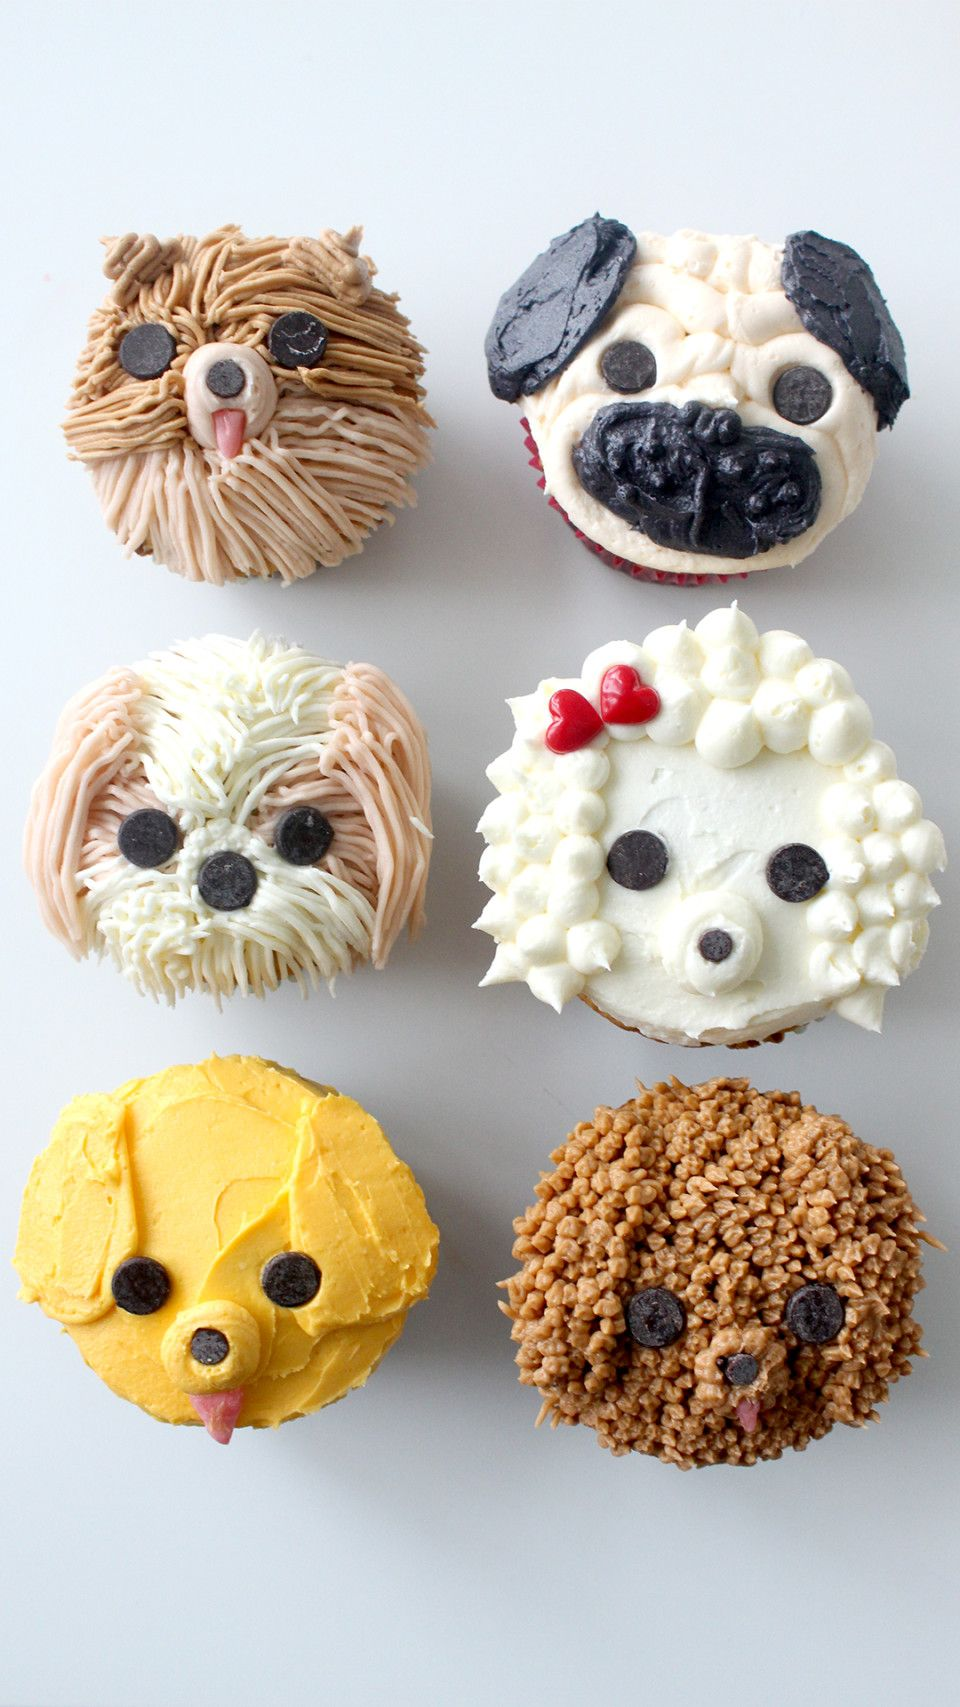 Dog Cupcakes Recipe Real dog, Buttercream recipe and